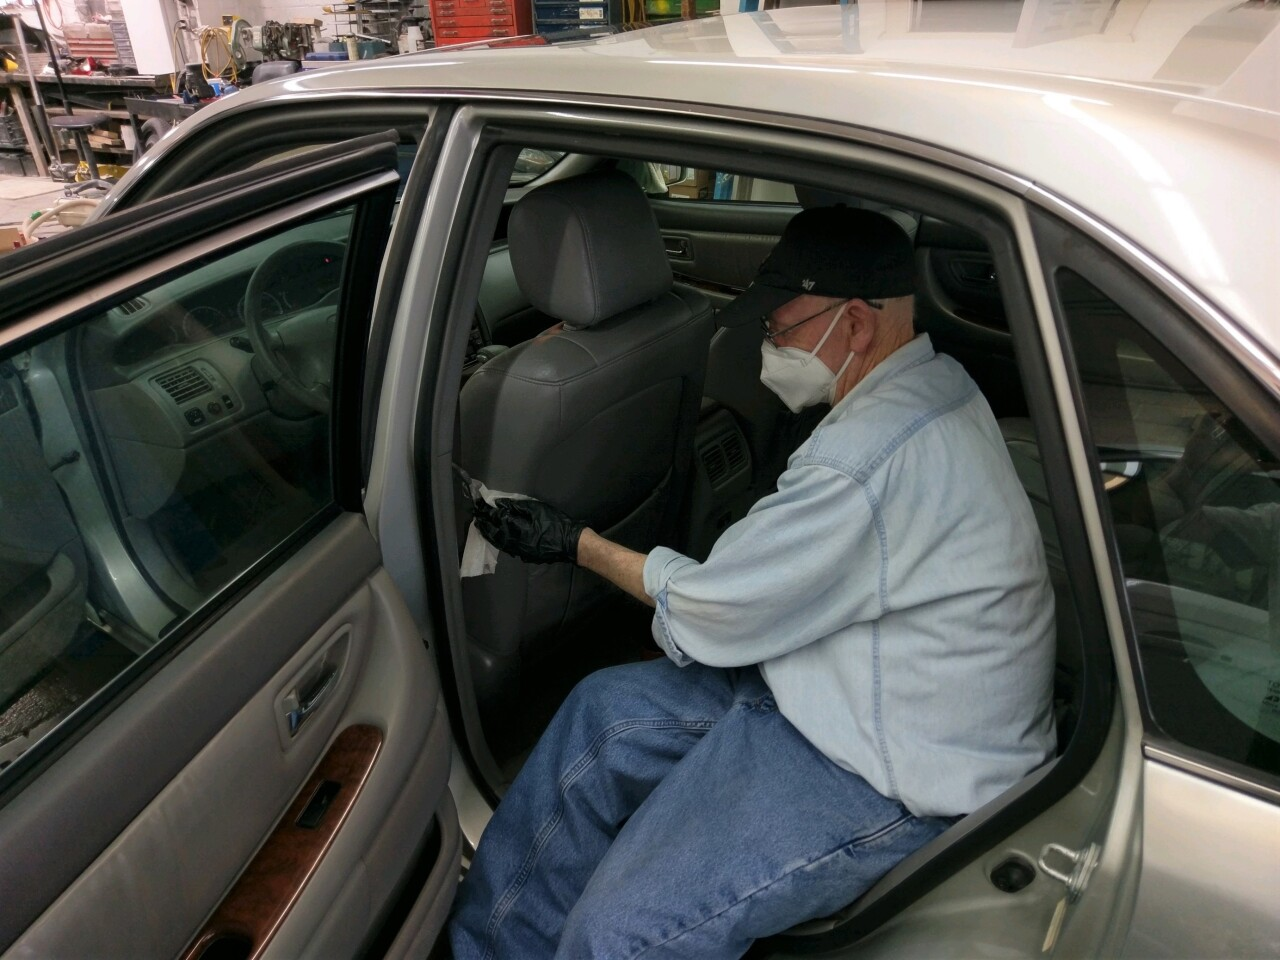 Volunteer Mike Truman helps clean a donated 2000 Toyota Avalon for Samaritan Car Care Clinic. Truman is wearing a mask and gloves while wiping down the driver's seat.